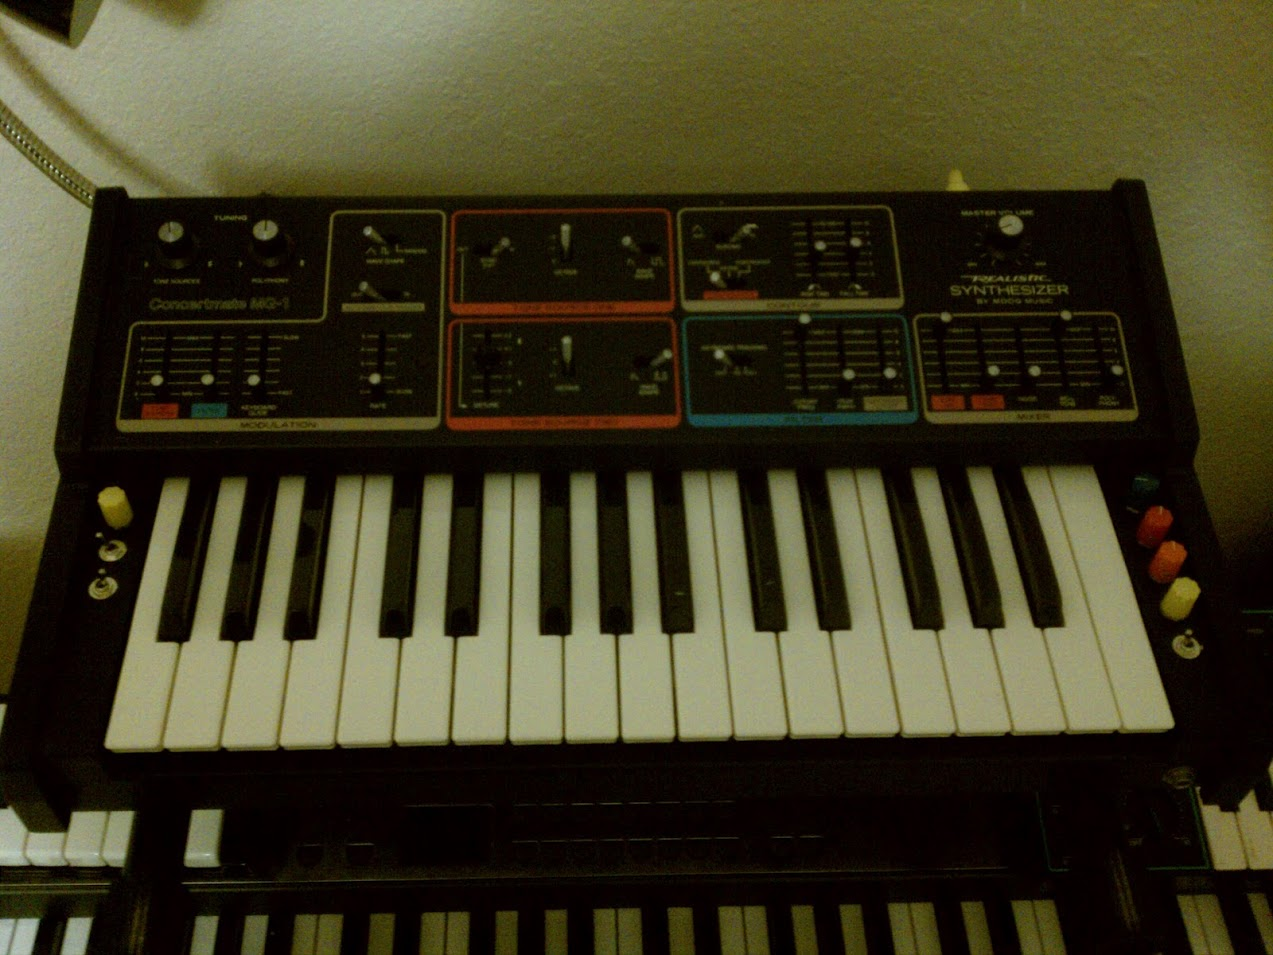 Pictured: One of those synthesizers.